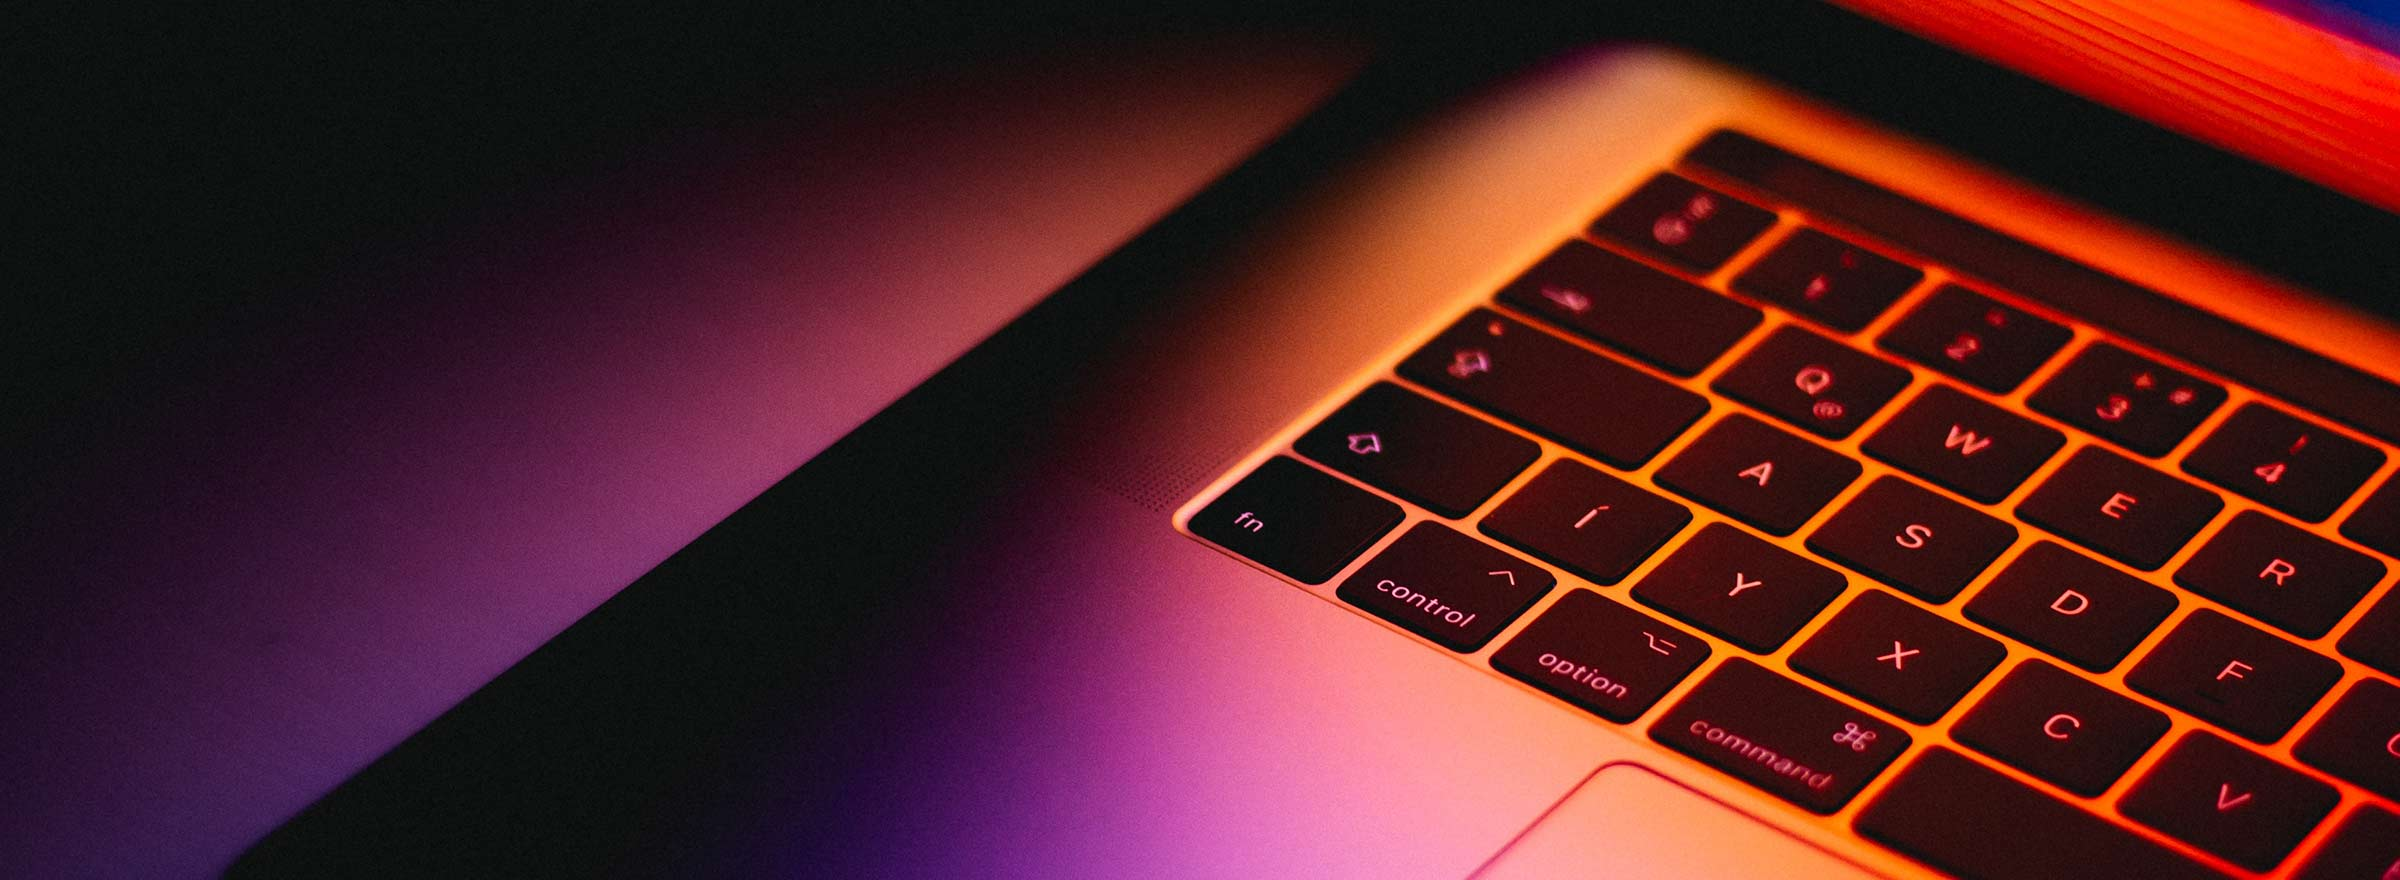 left third of a Mac laptop keyboard, in orange and purple light